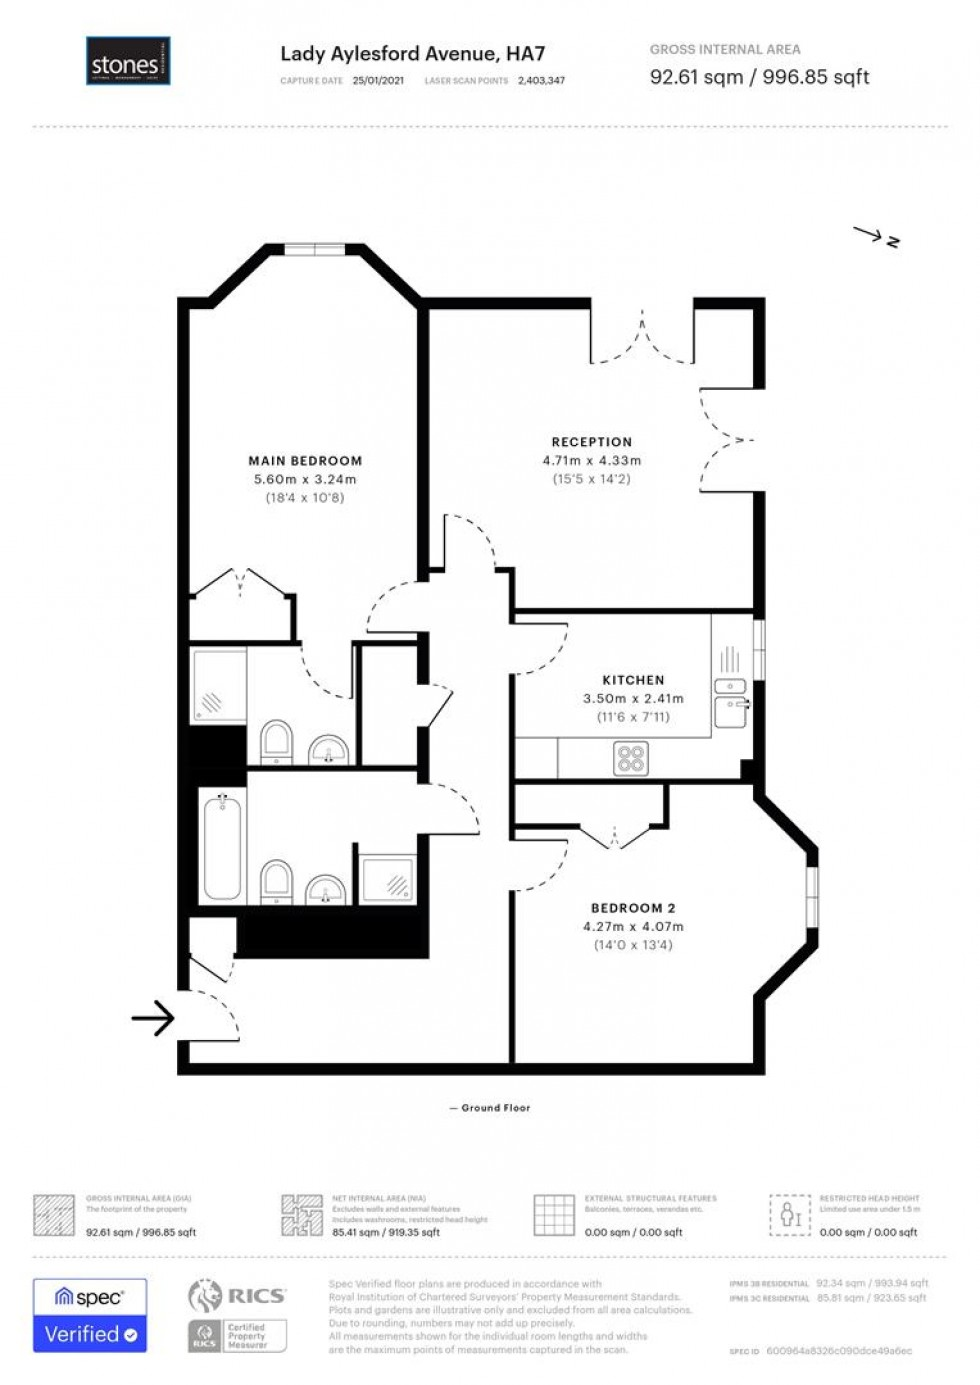 Floorplan for Lady Aylesford Avenue, Stanmore, HA7